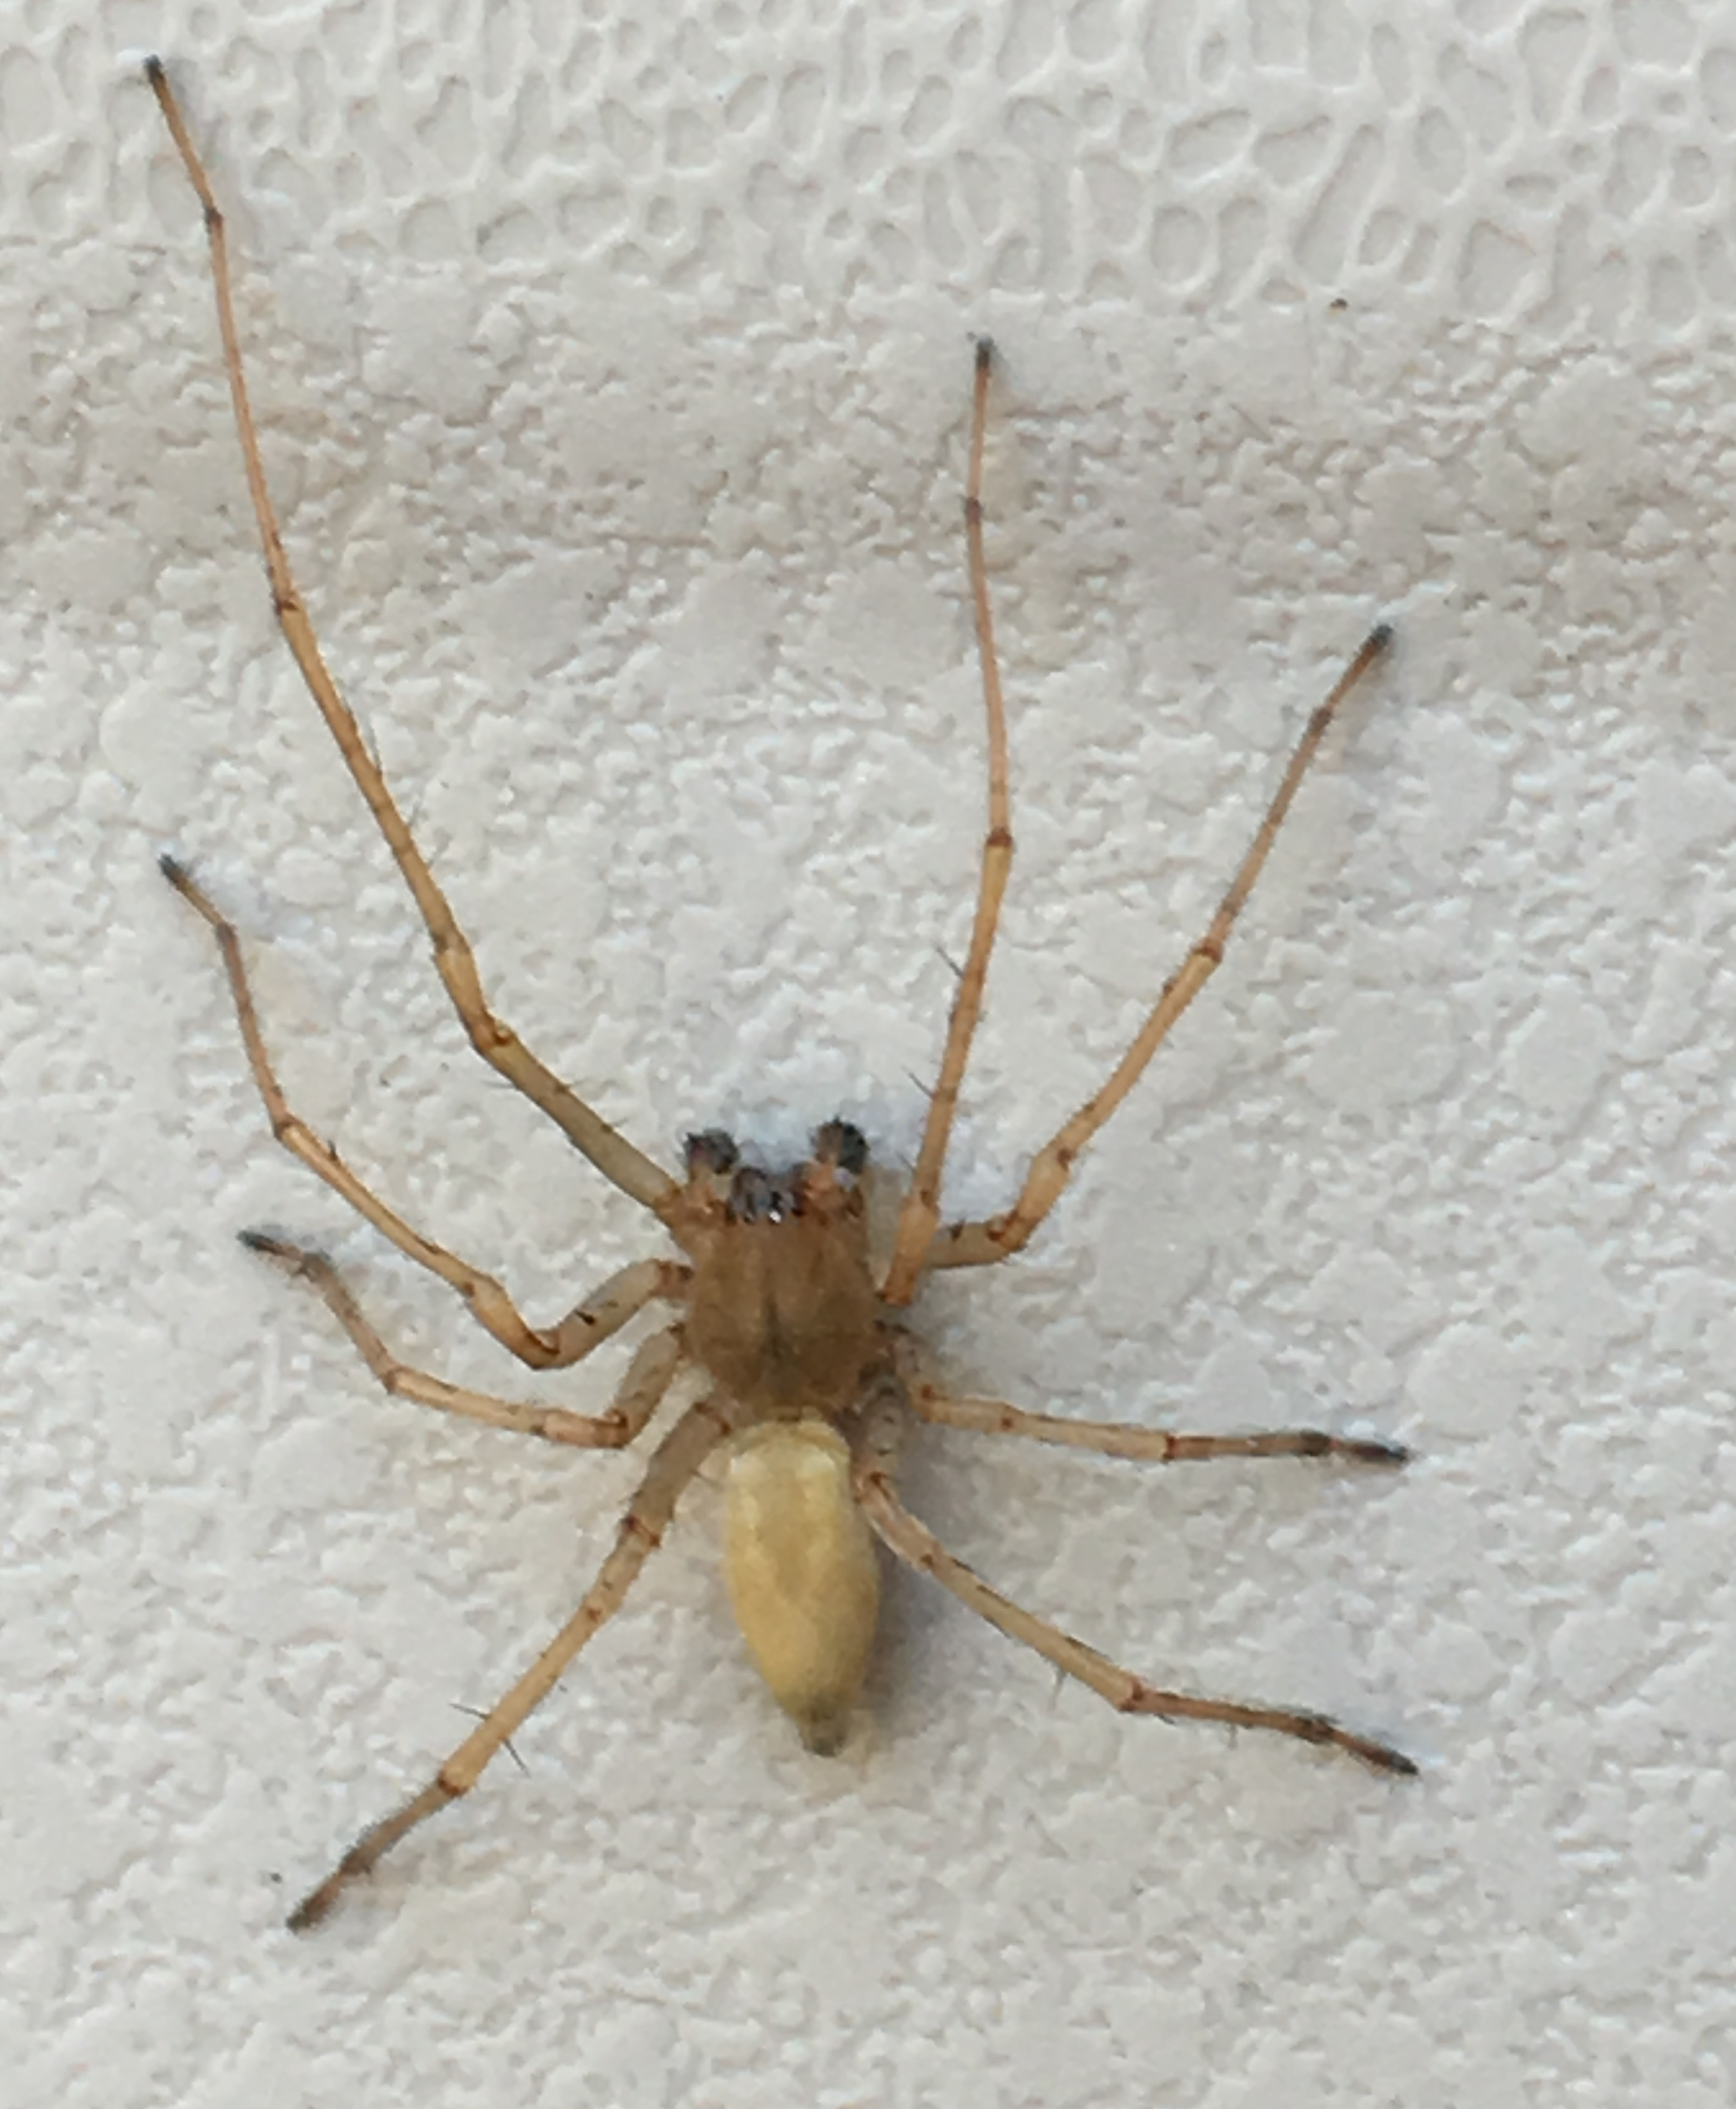 Picture of Cheiracanthiidae (Prowling Spiders) - Male - Dorsal